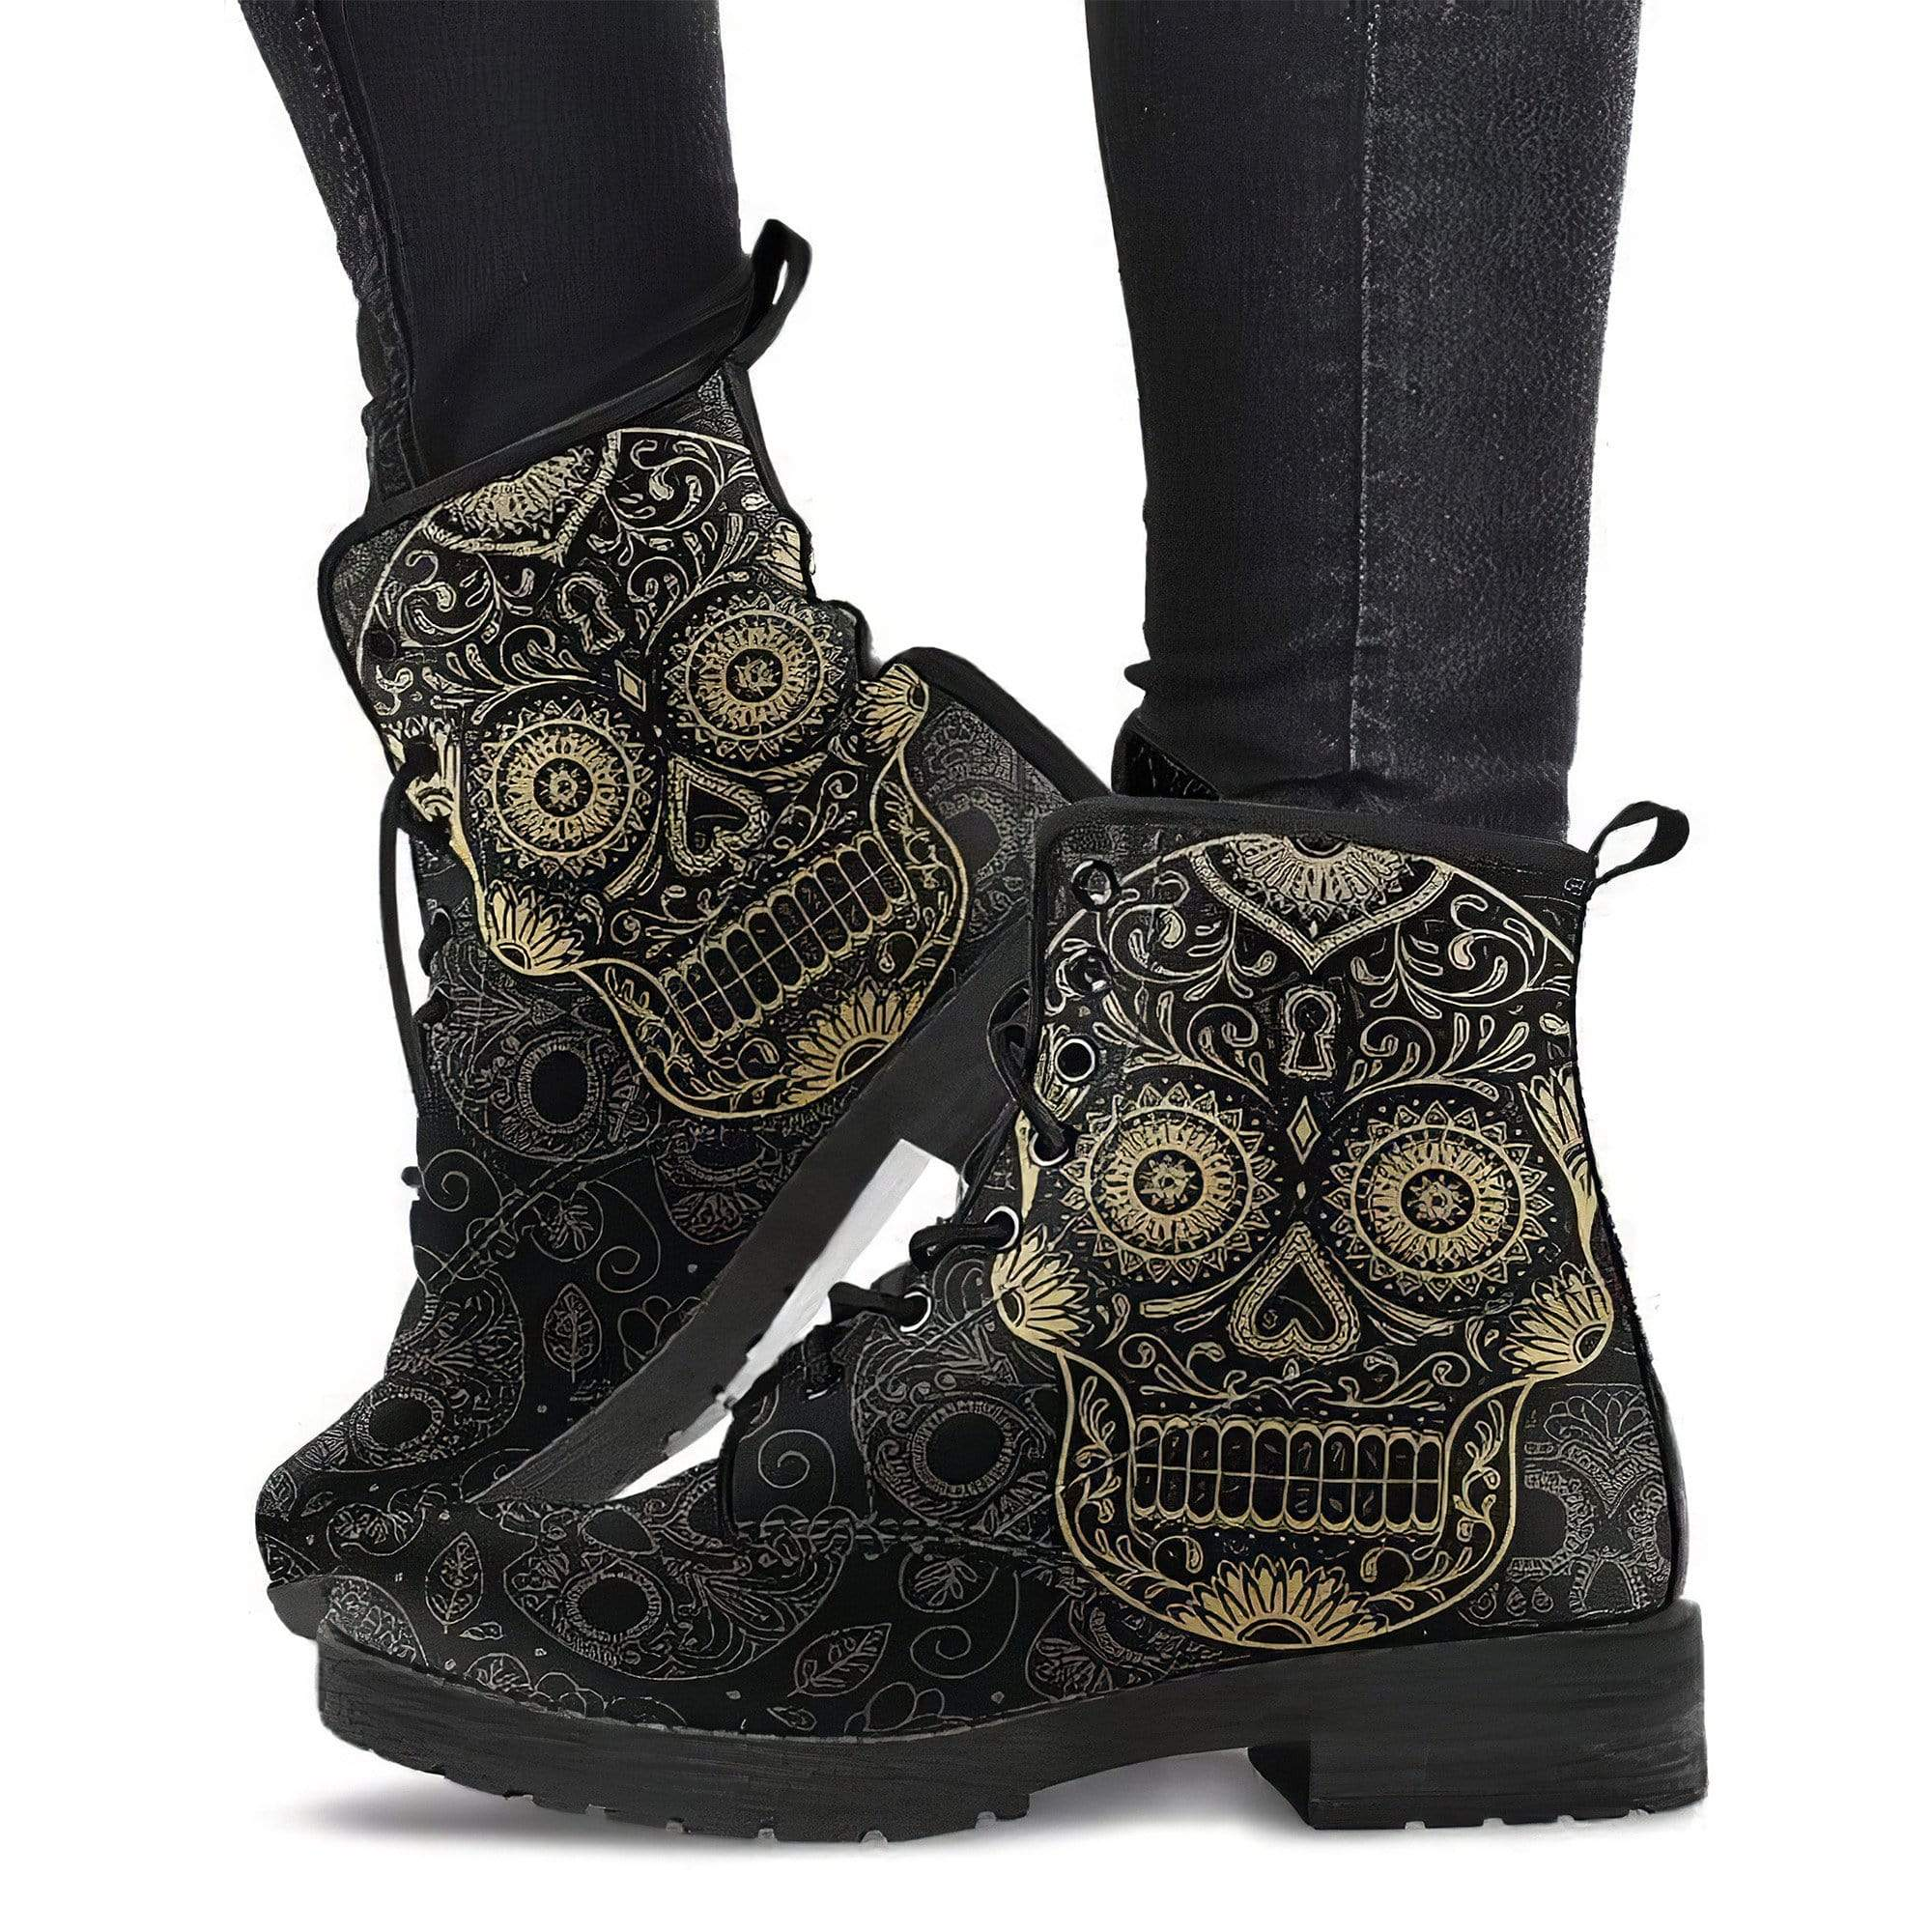 SugarSkull 1 Women's Boots Vegan Friendly Leather Women's Leather Boots